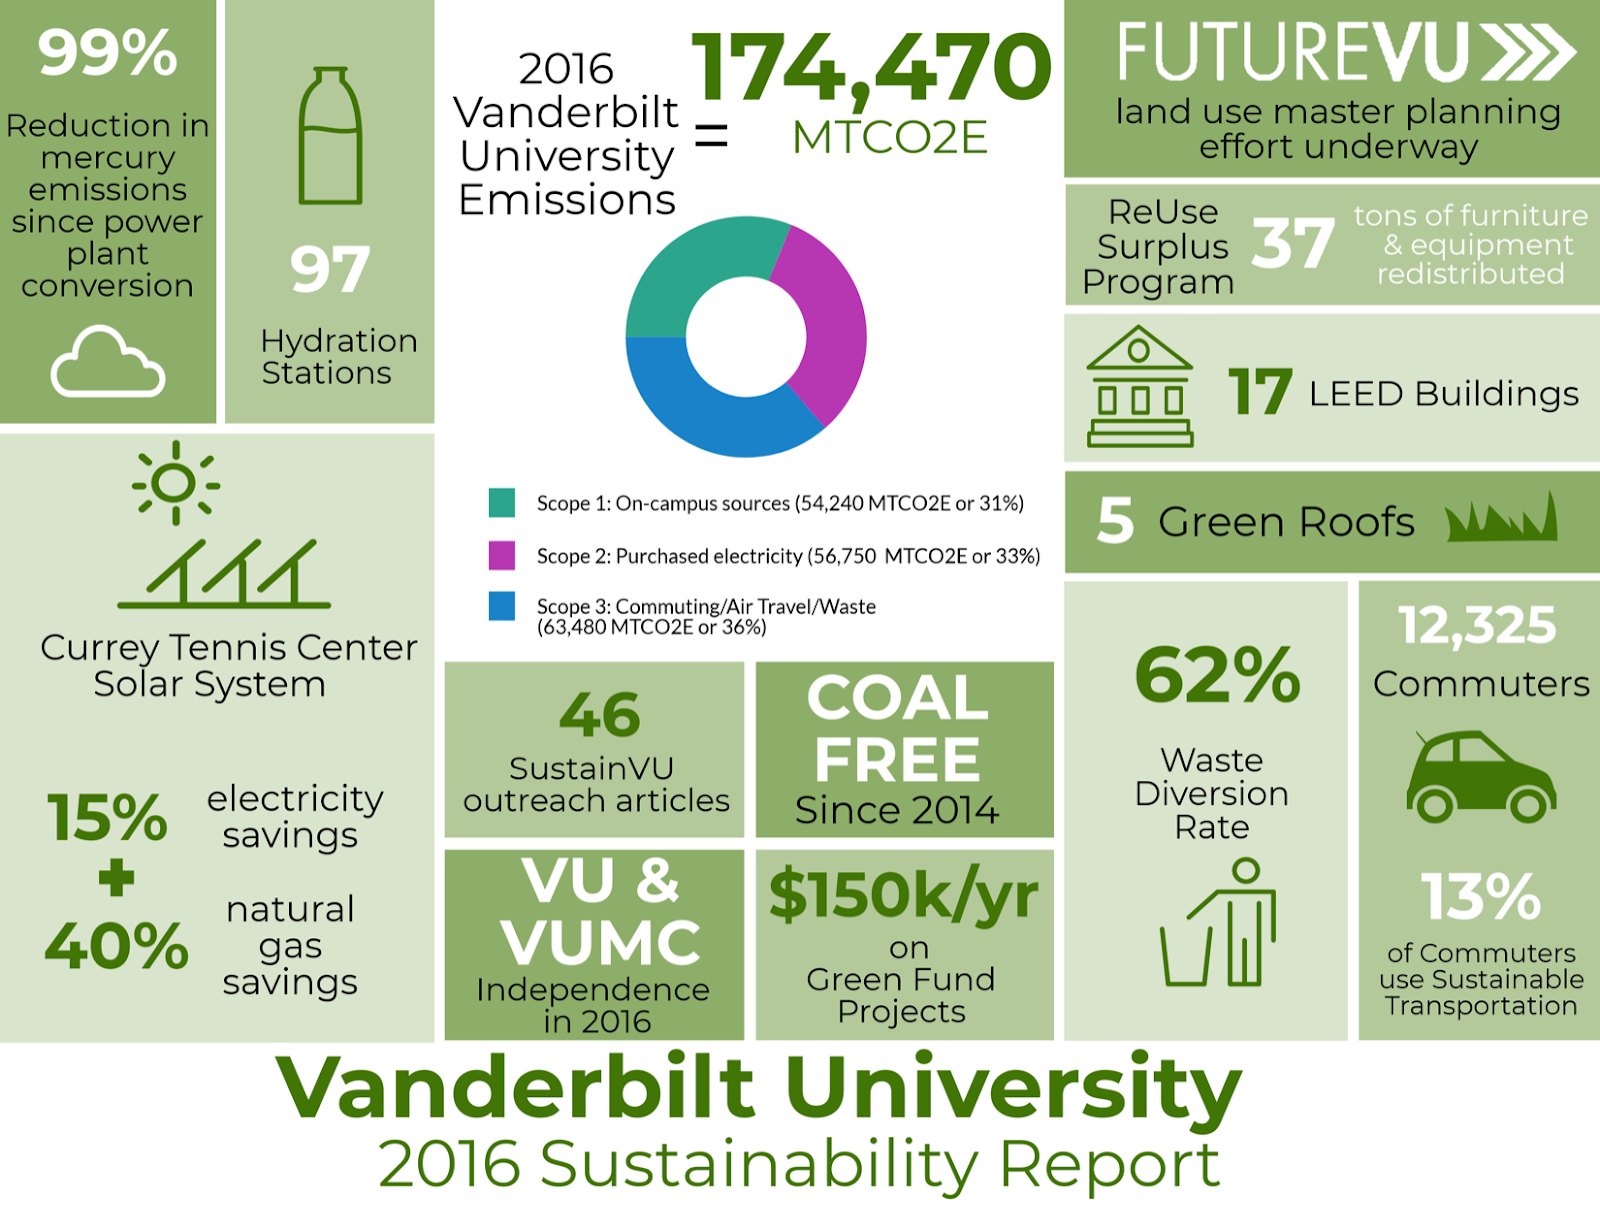 Infographic courtesy of Vanderbilt University 2016 Sustainability Report